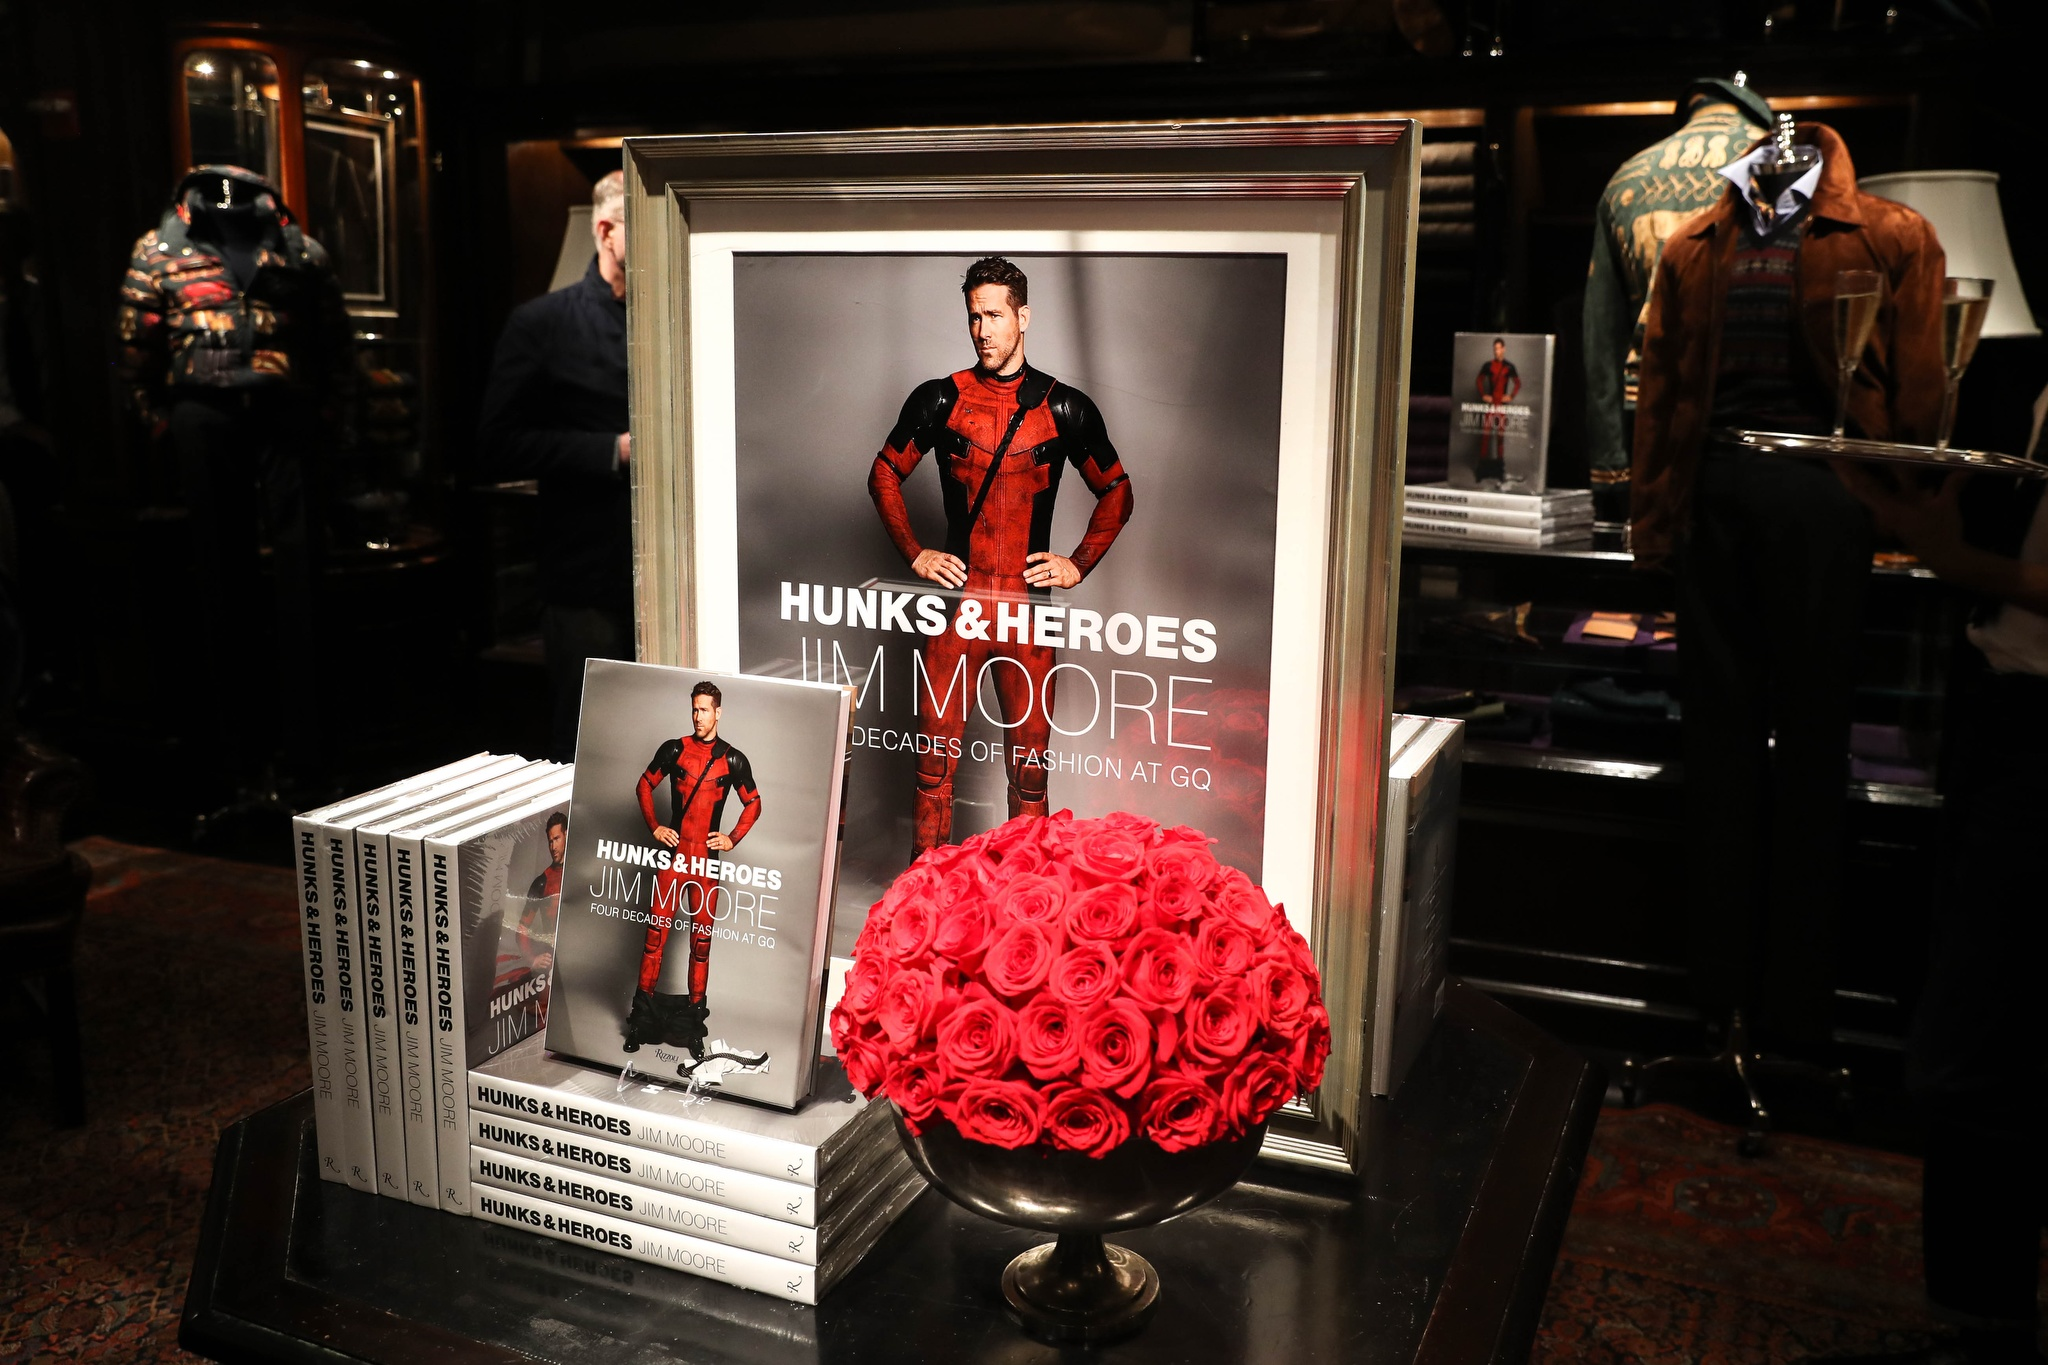 Hunks and Heroes by Jim Moore, Published by Rizzoli